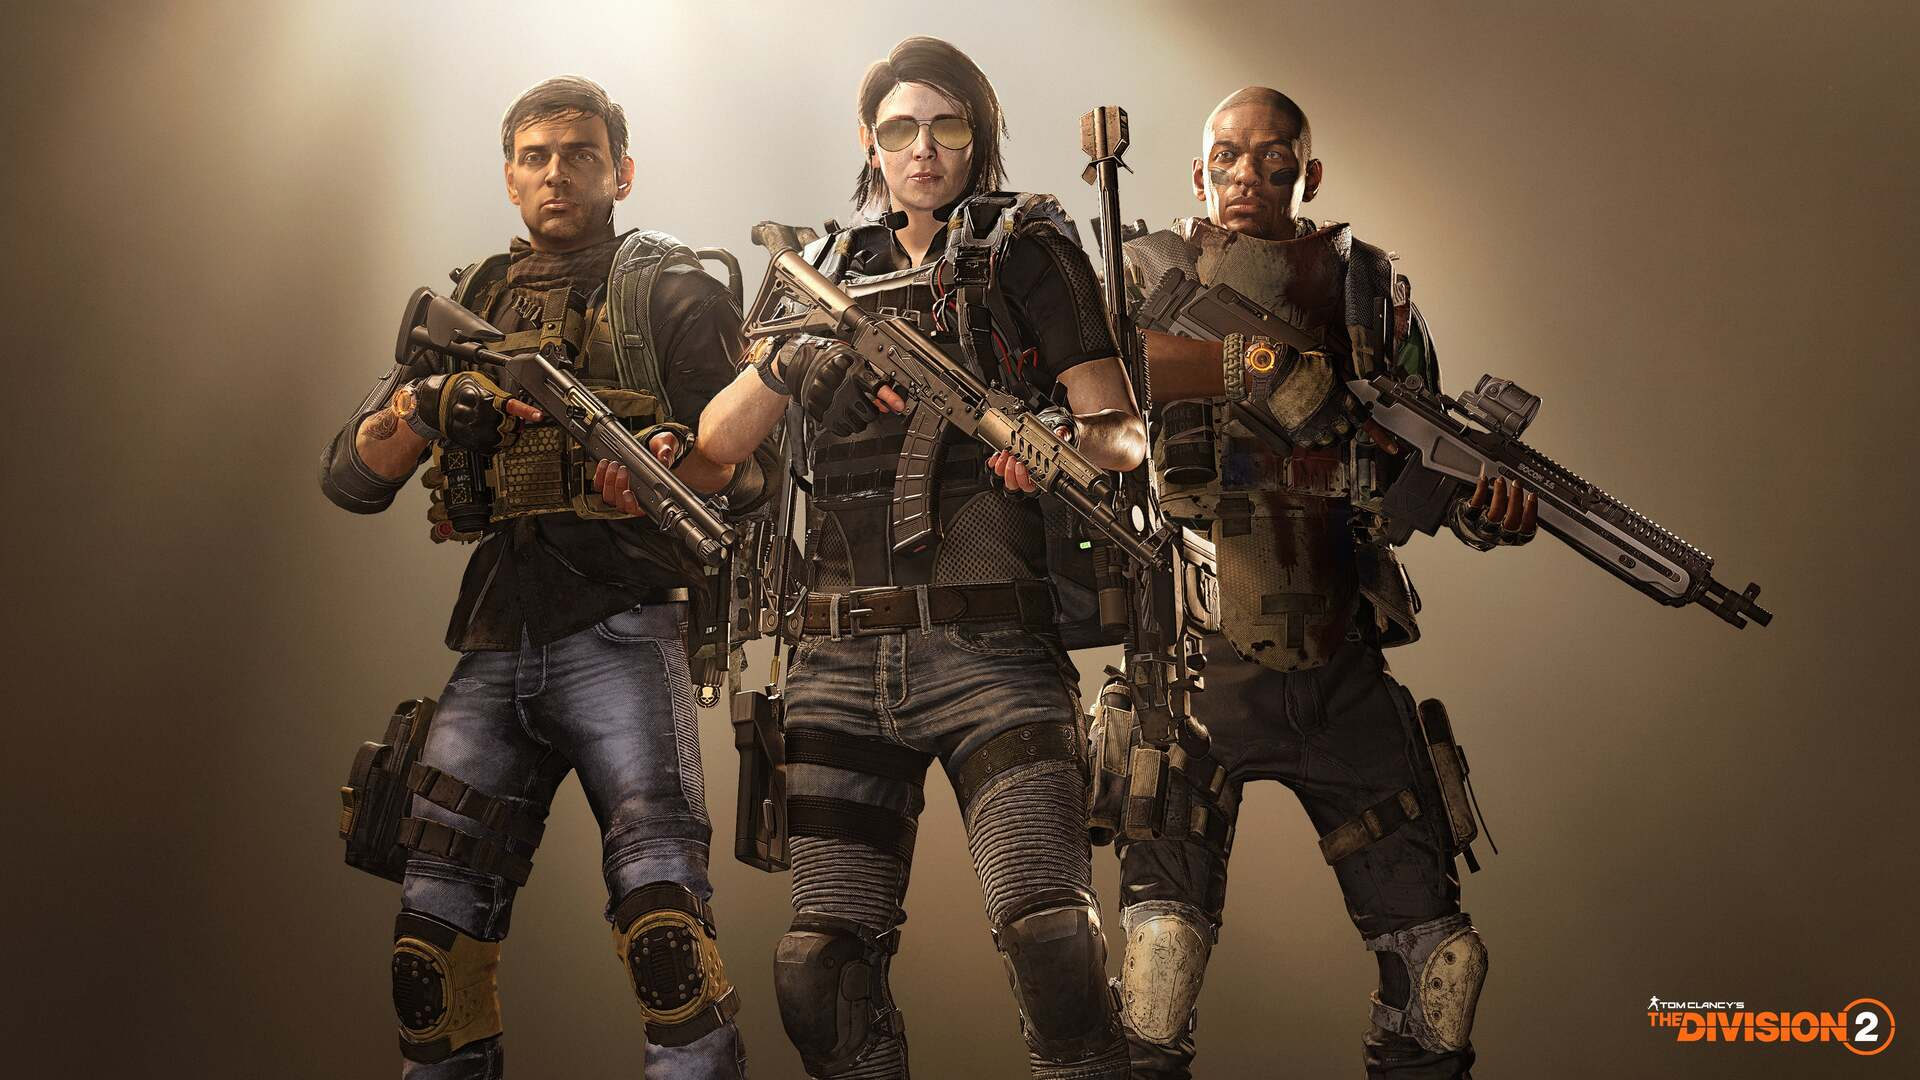 1920x1080 The Division 2 Hard Wired Laptop Full Hd 1080p Hd